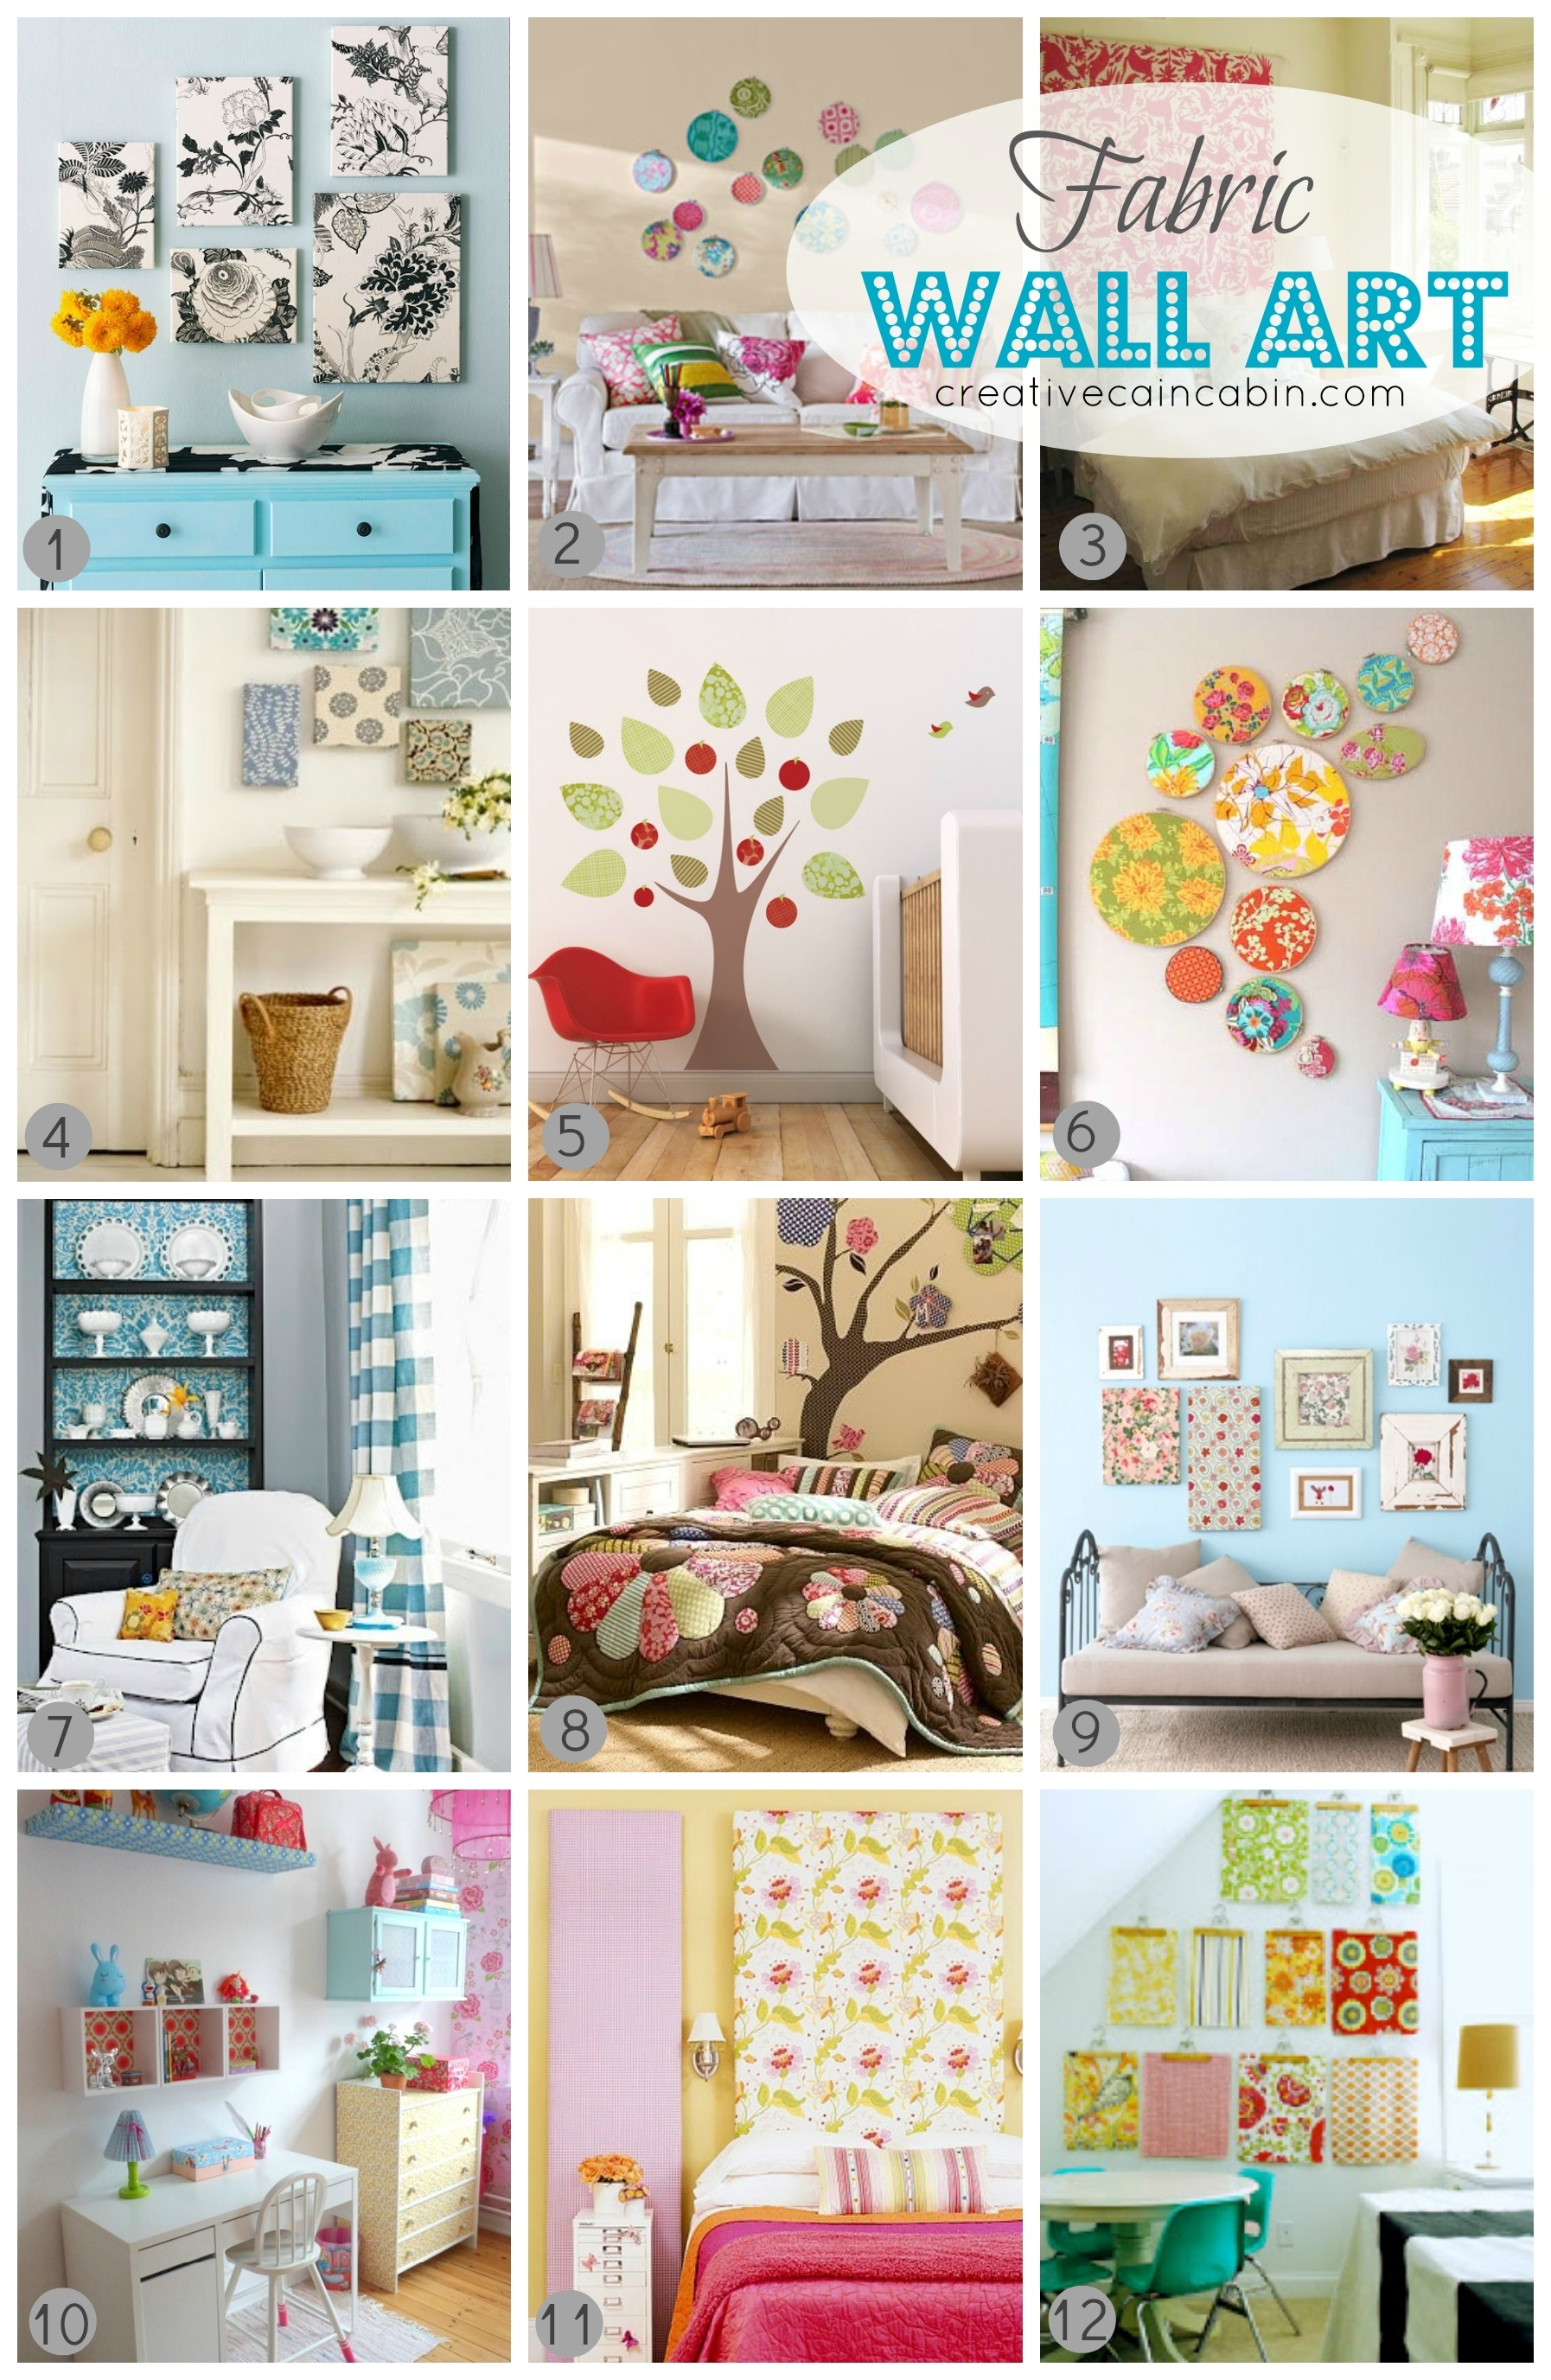 12 Ways To Use Fabric As Art – Creative Cain Cabin For Best And Newest Childrens Fabric Wall Art (View 1 of 15)